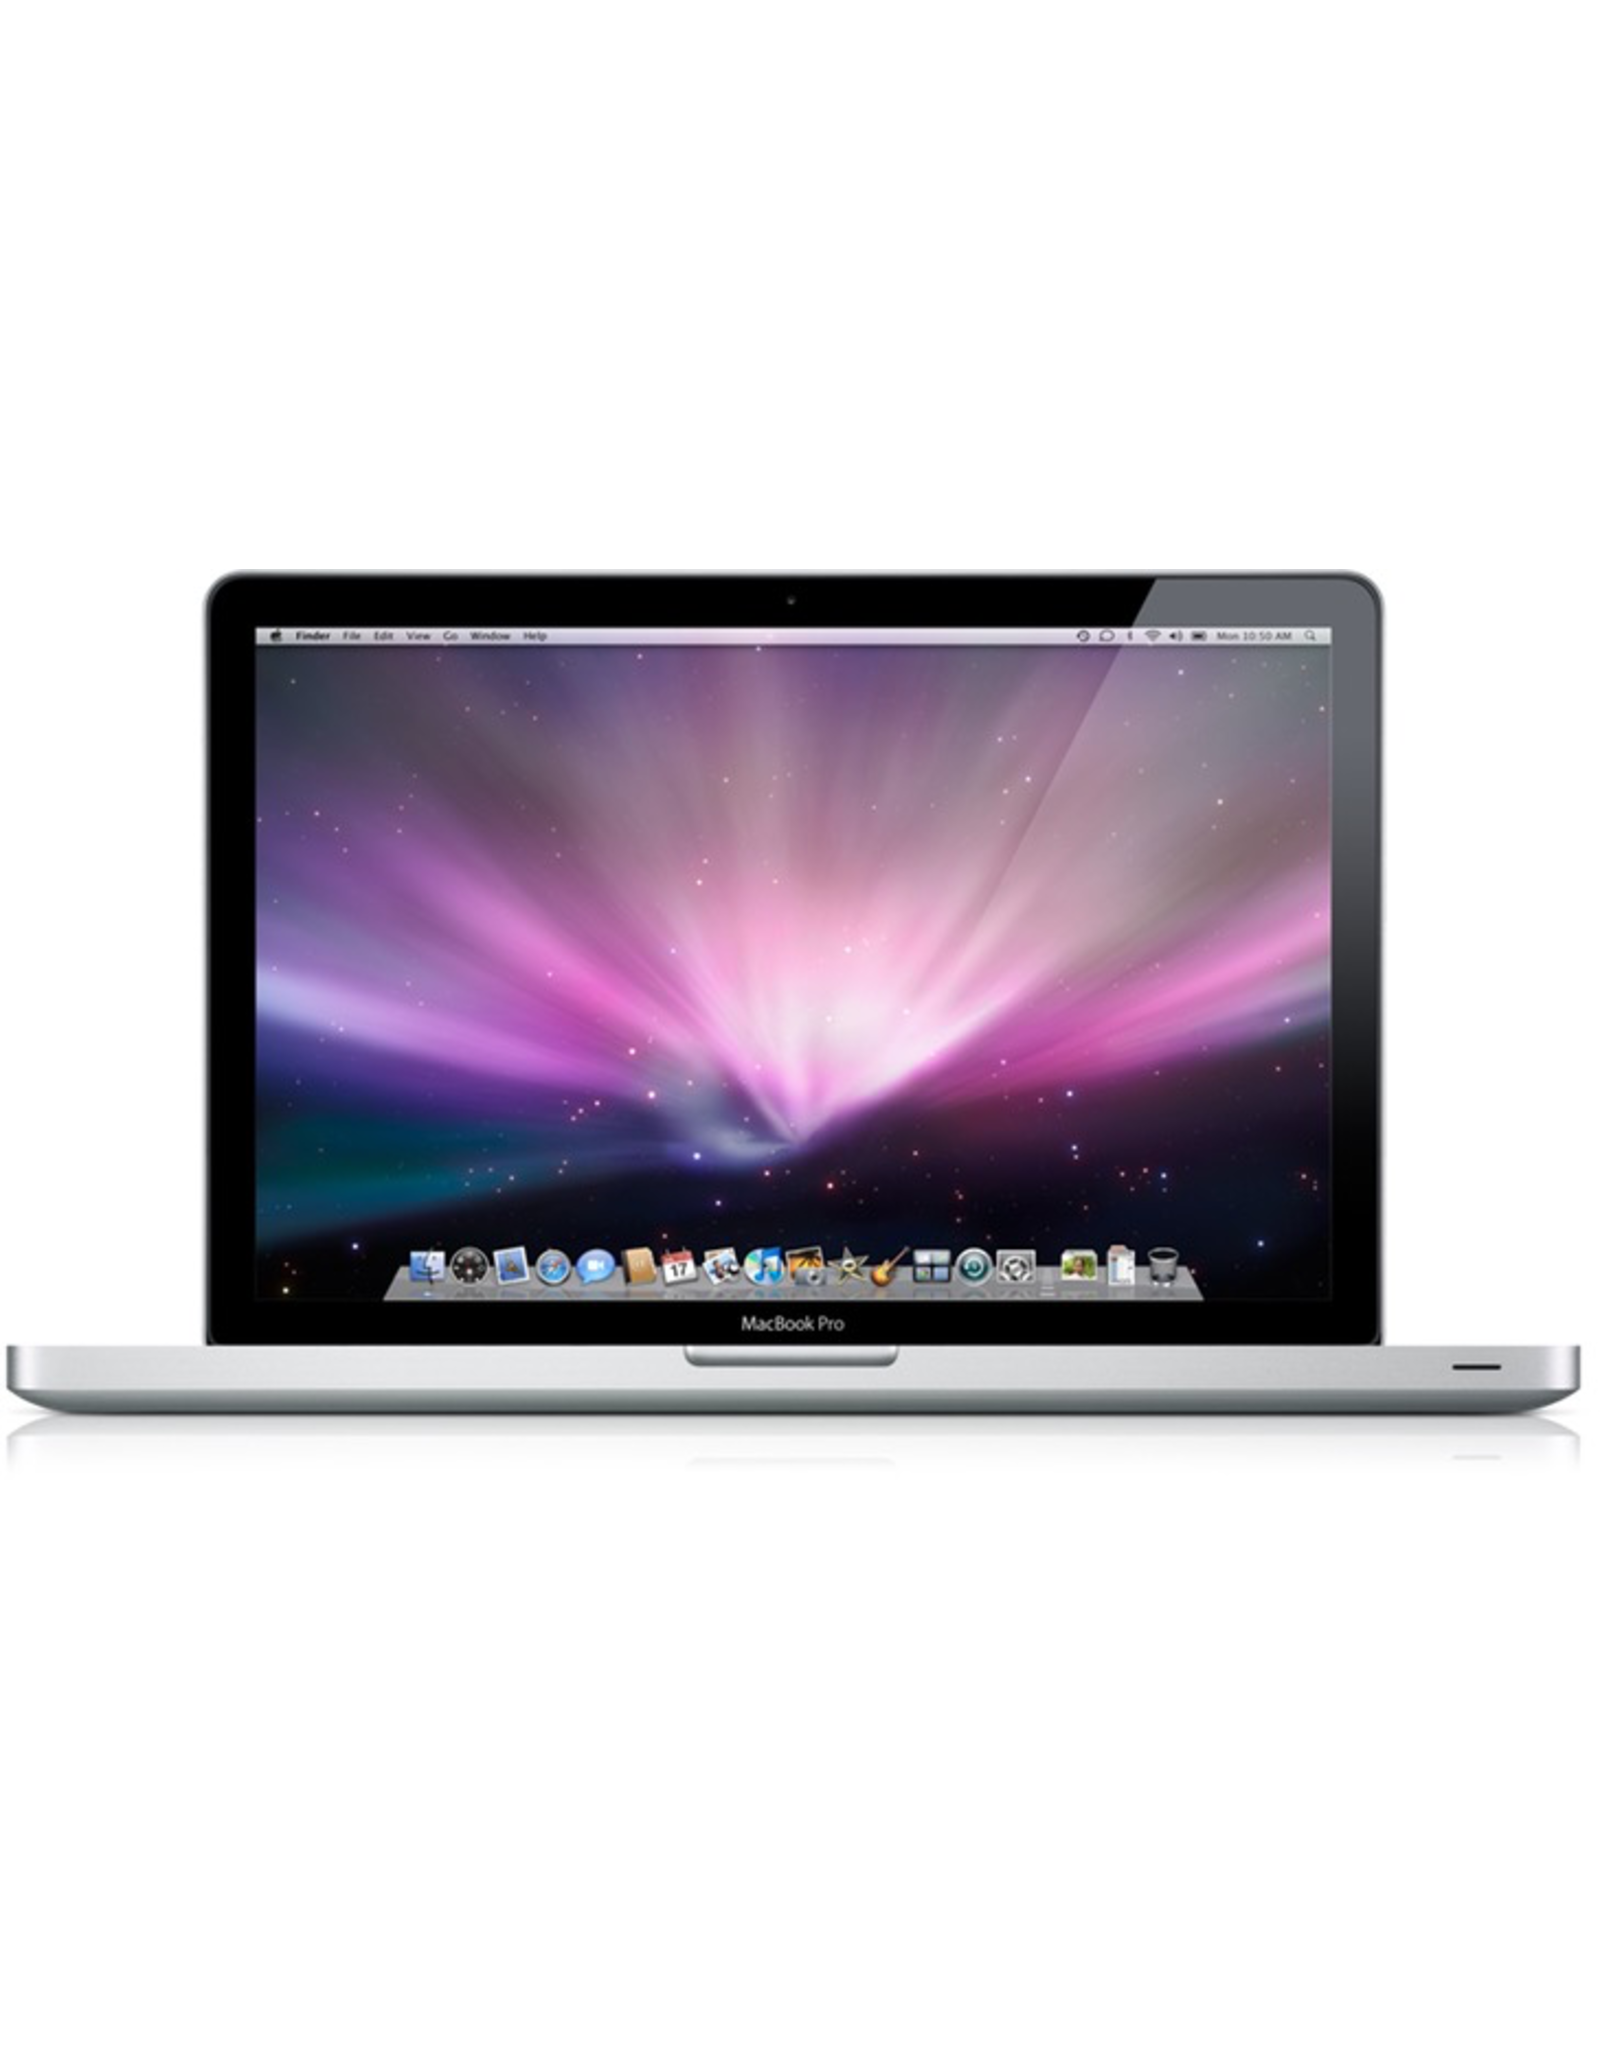 Apple MacBook Pro (15-inch, Early 2011) - Intel Core i7 2 GHz / 8GB RAM / 500GB HDD / 30 Day Exchange